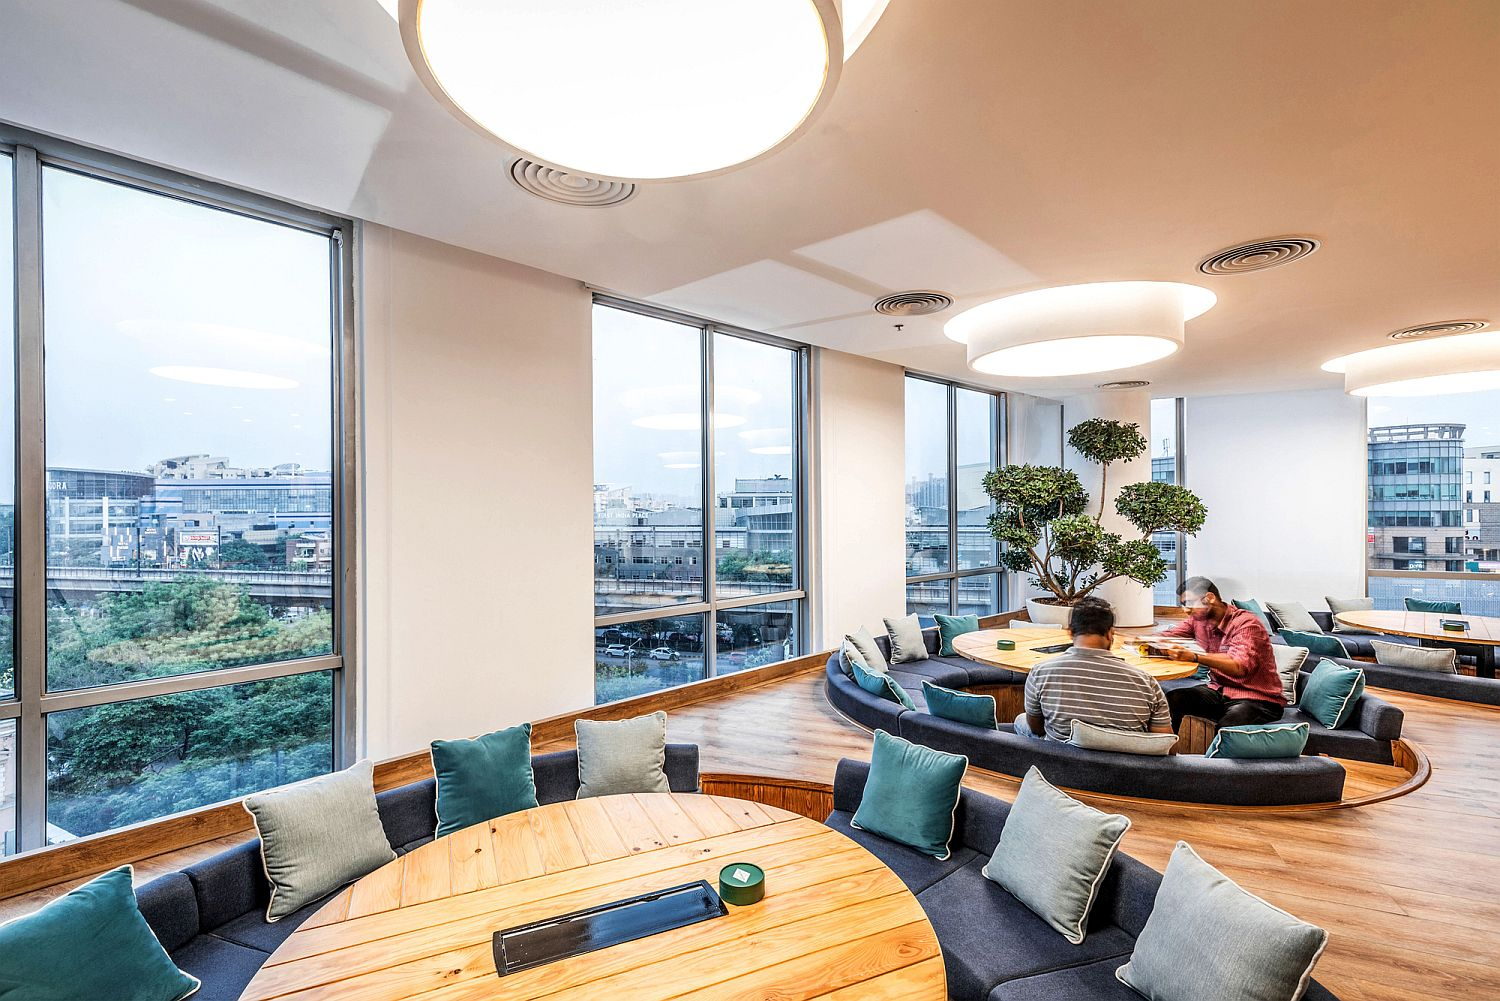 William Grant & Sons Ideation Space by Design Plus